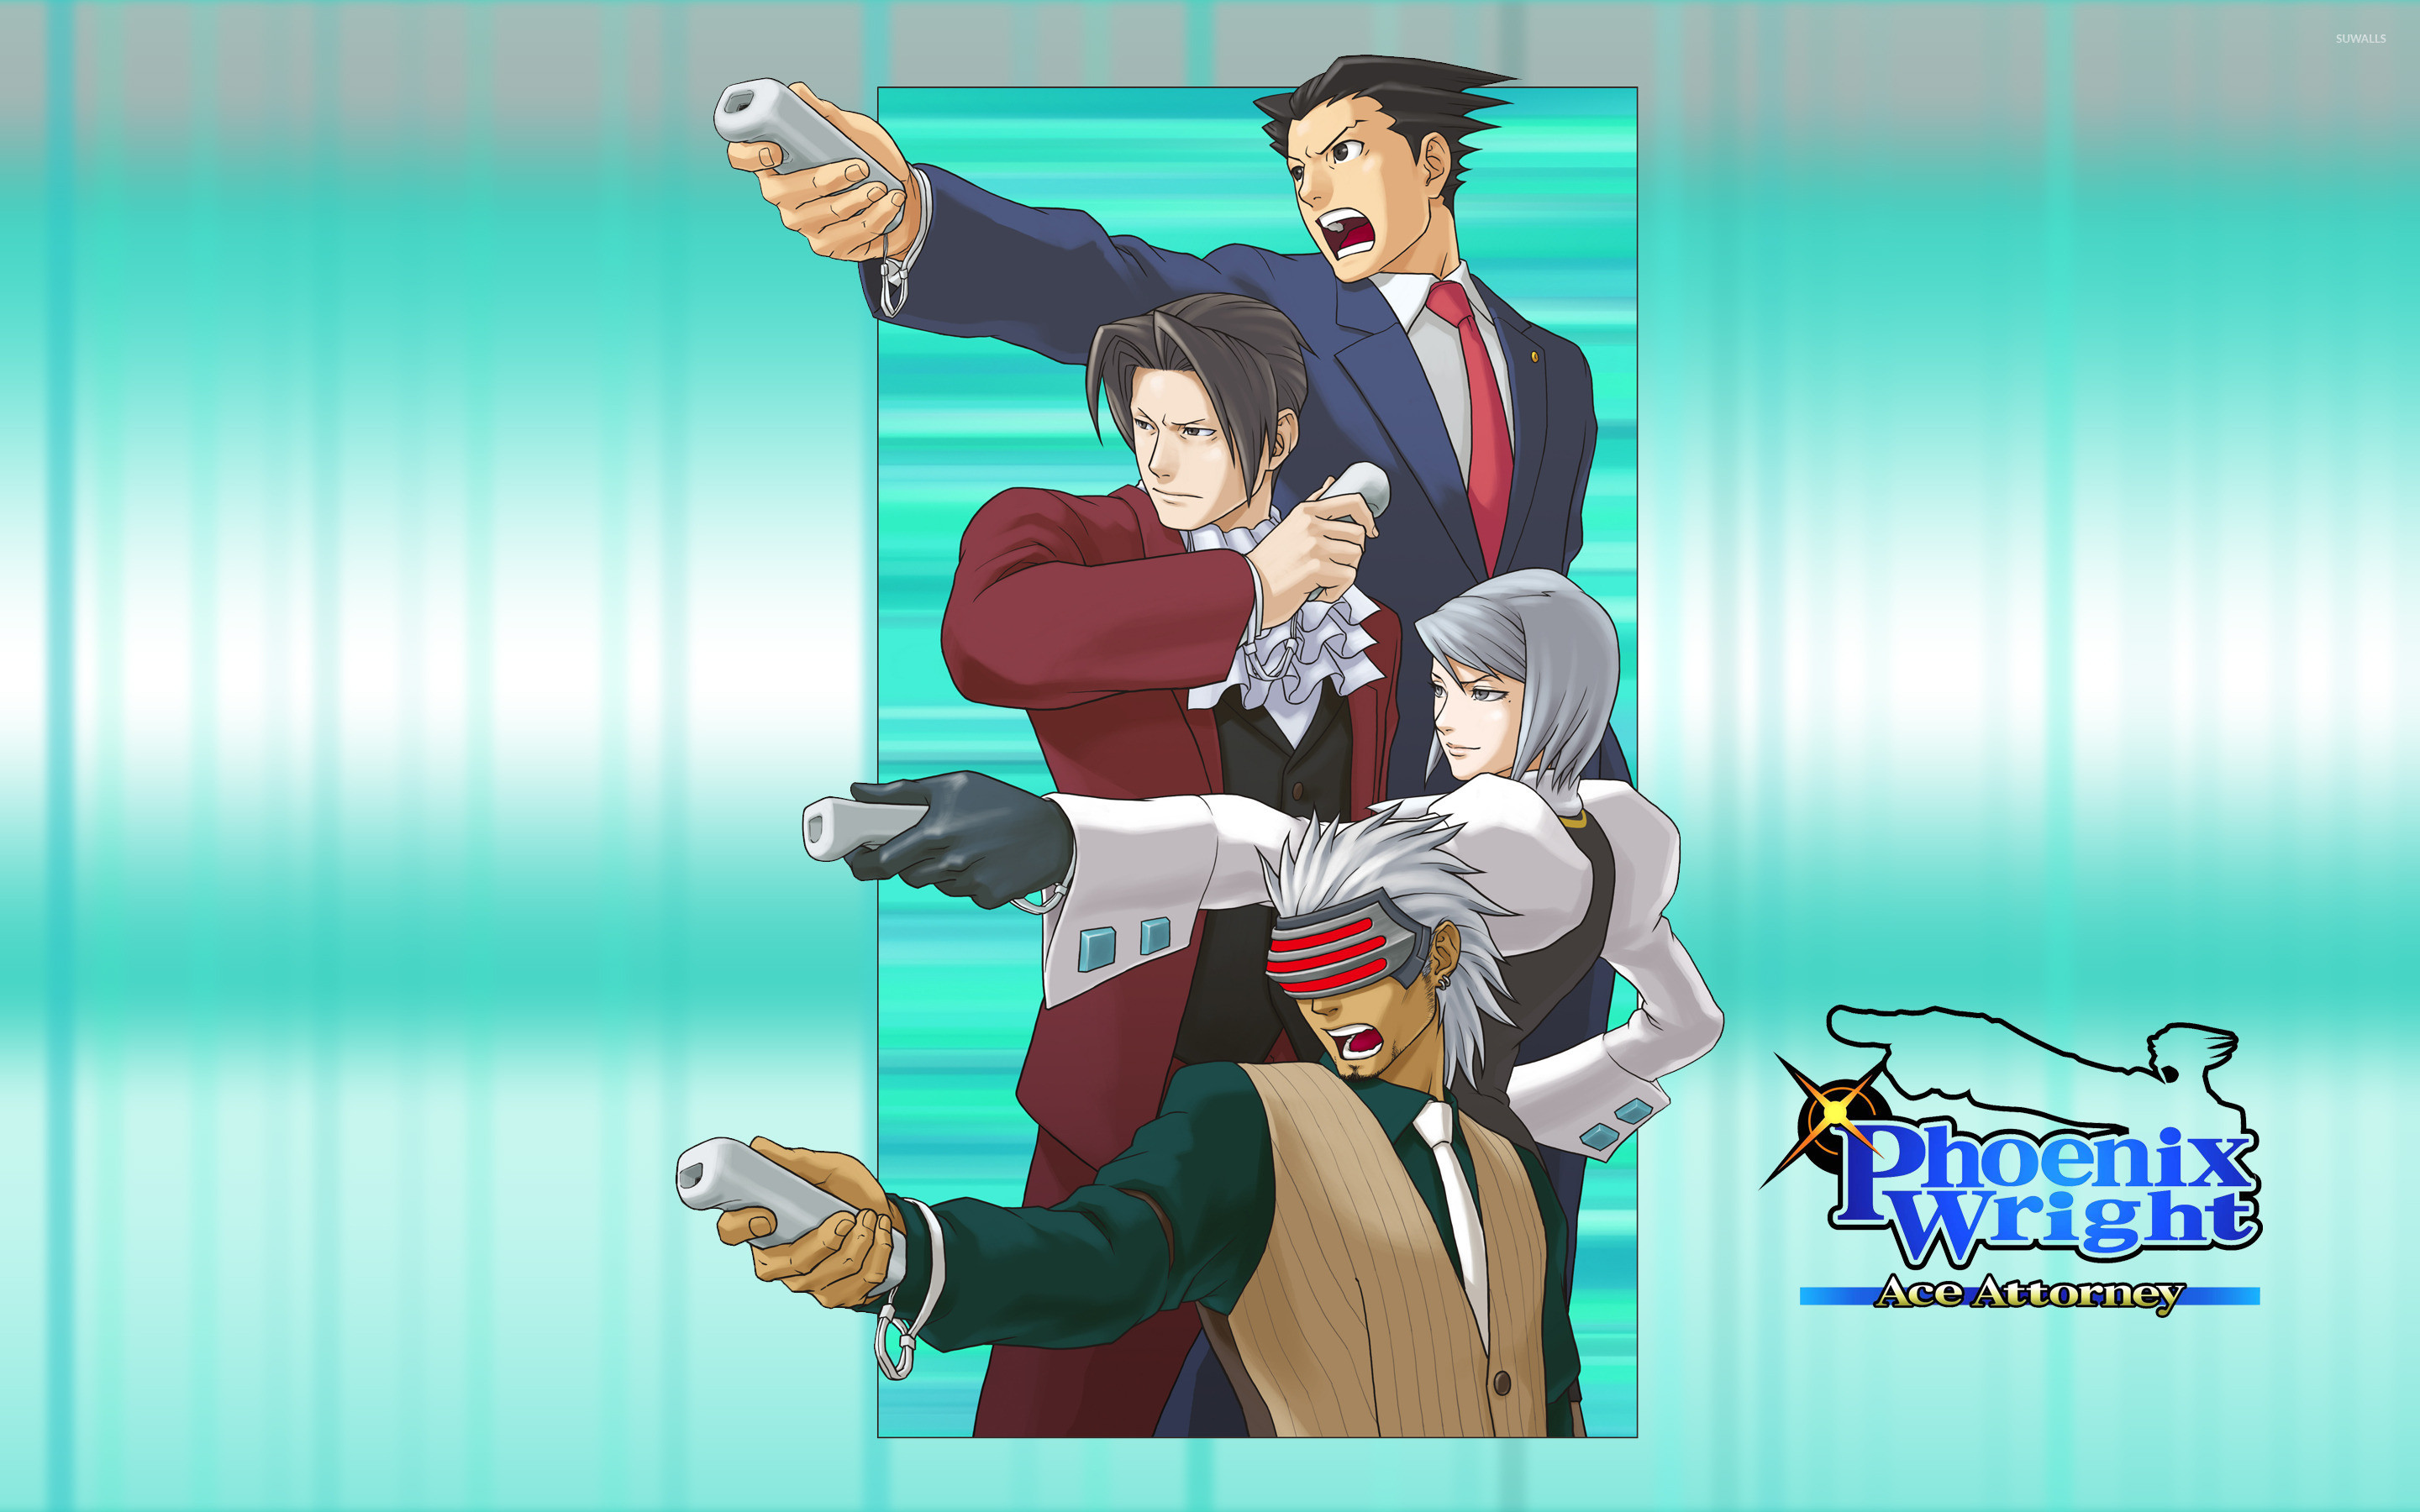 36 Phoenix Wright Ace Attorney Trilogy Wallpapers On Wallpapersafari